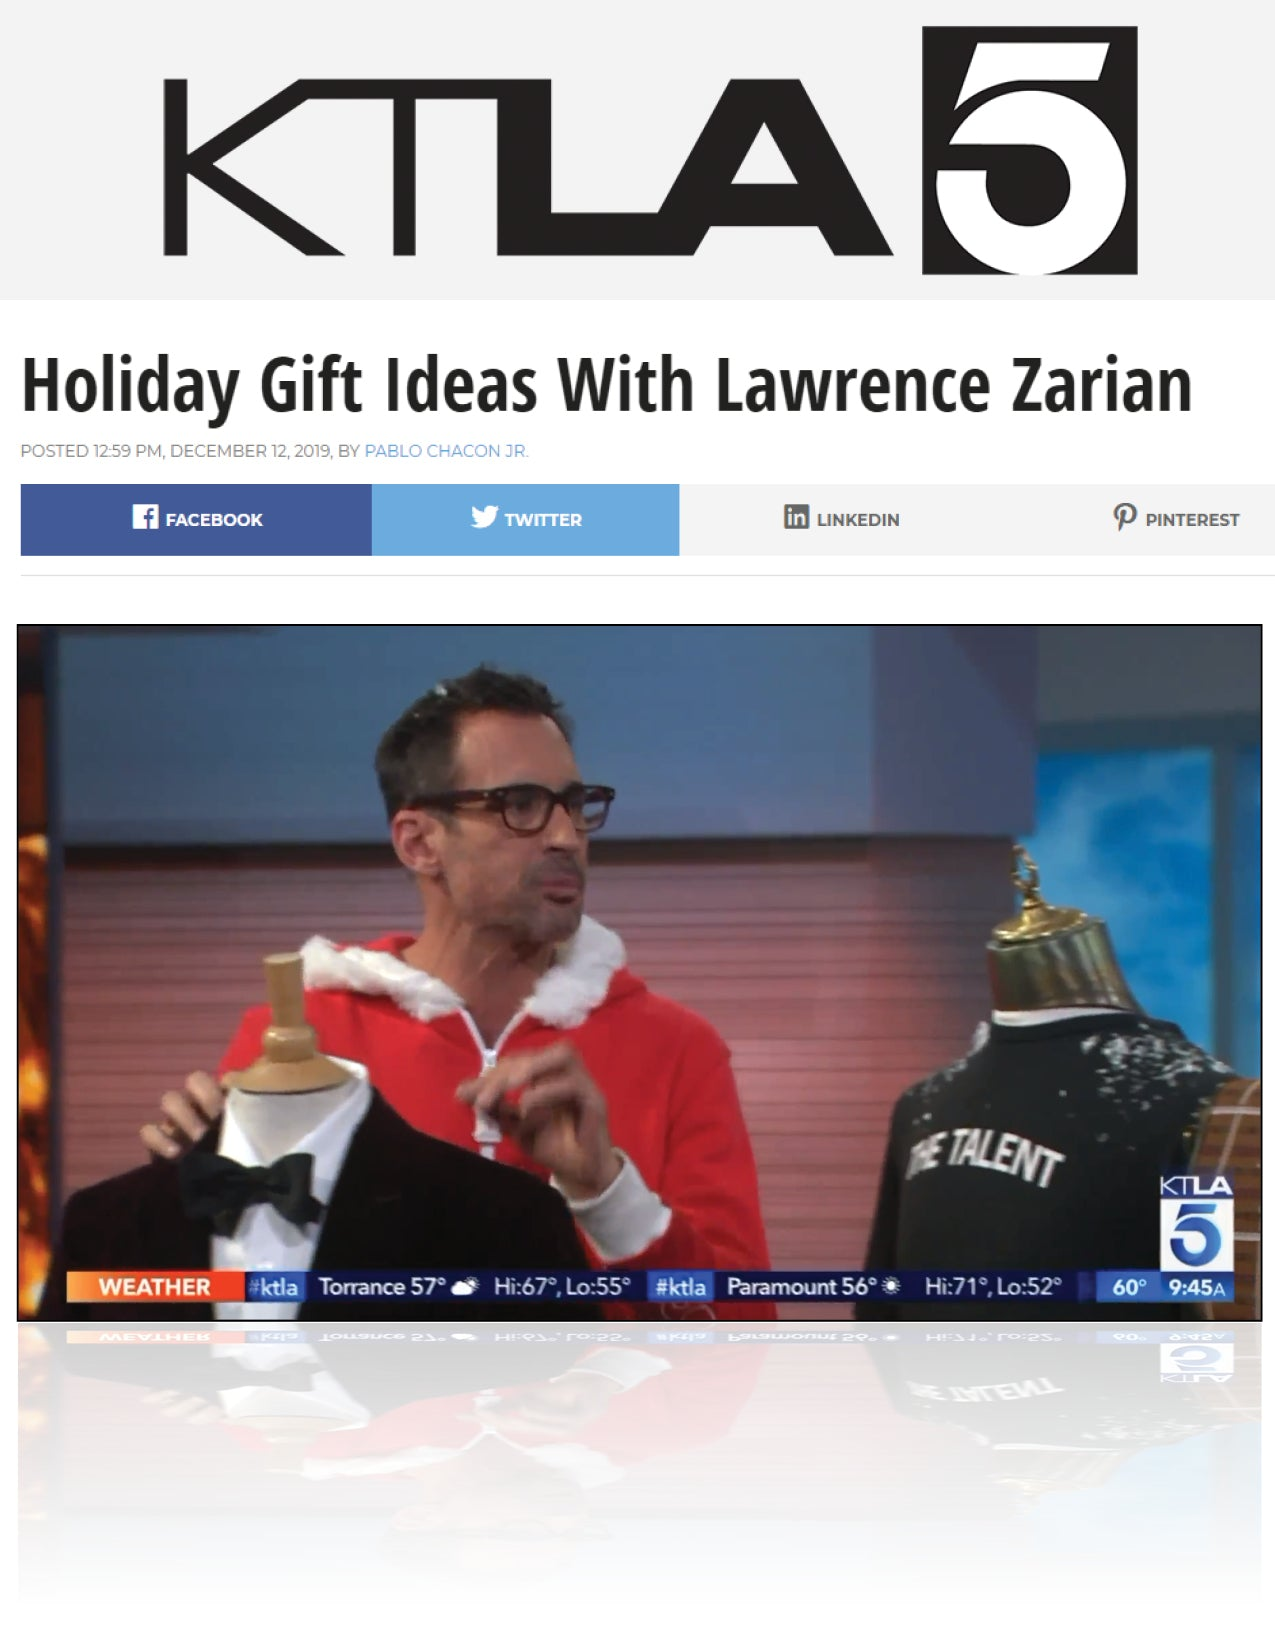 Holiday Gift Ideas With Lawrence Zarian | KTLA 5 | DECEMBER 2019